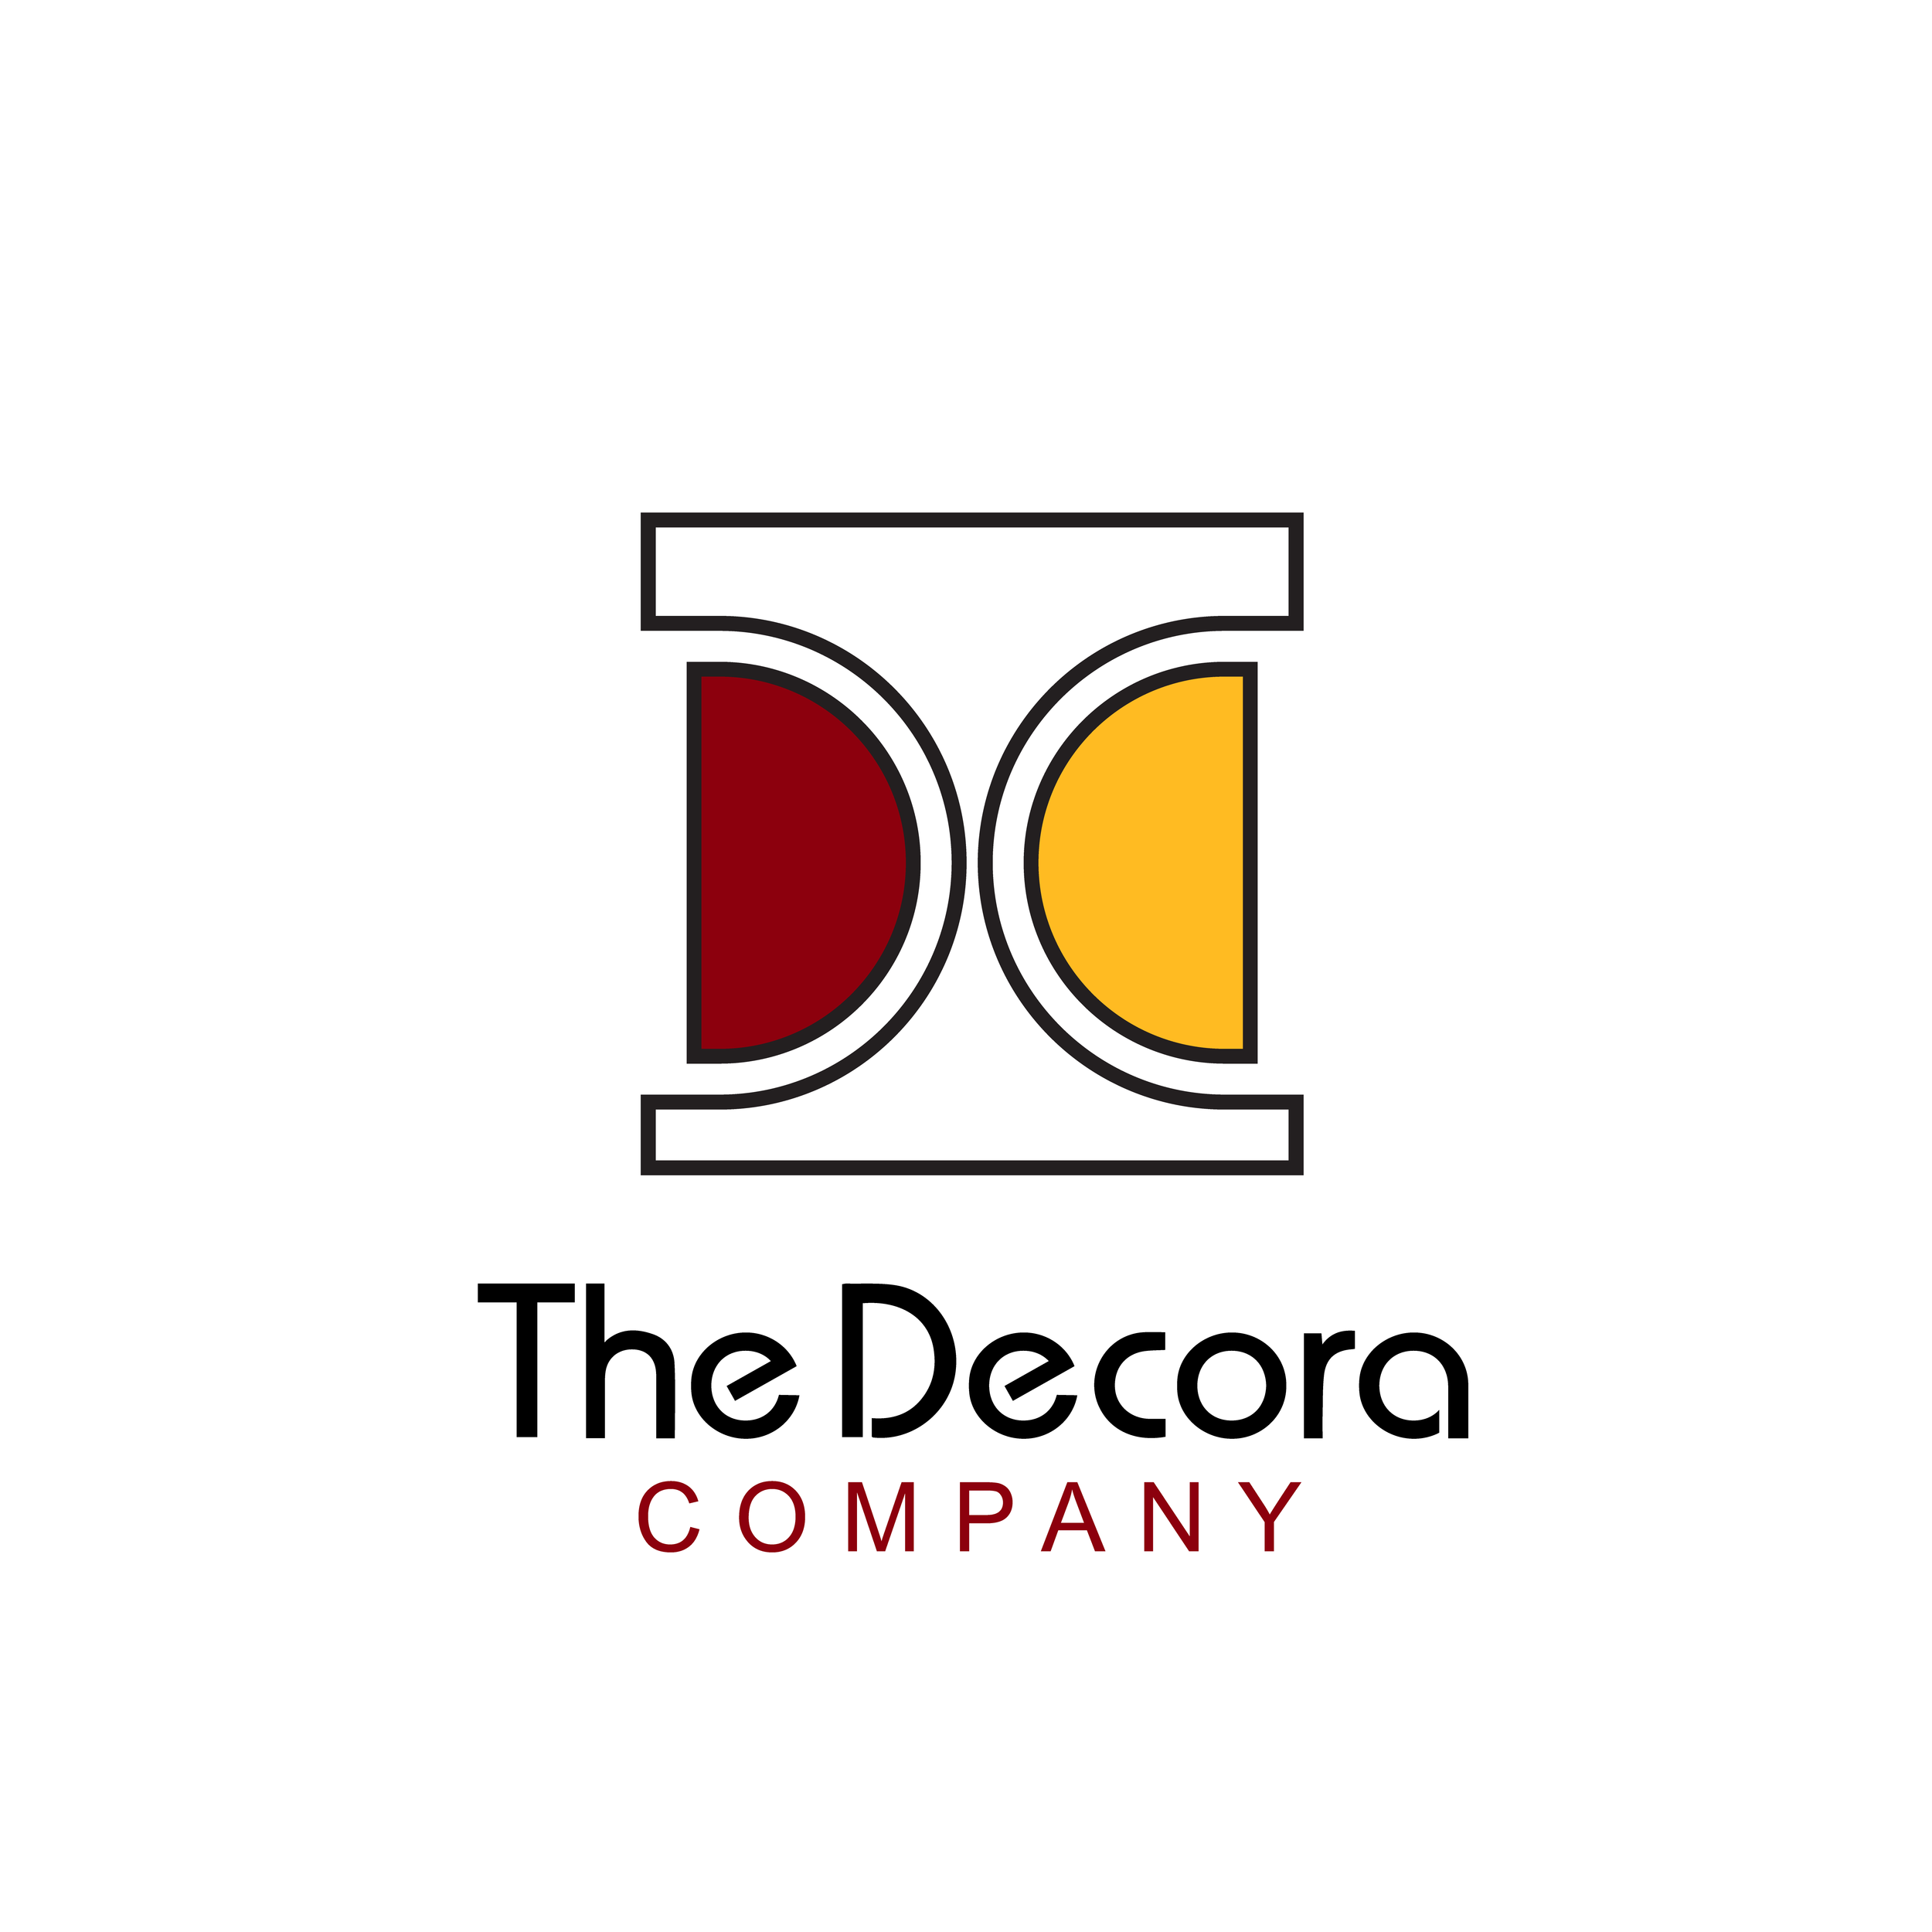 91176_decora-logo-white-base1.png